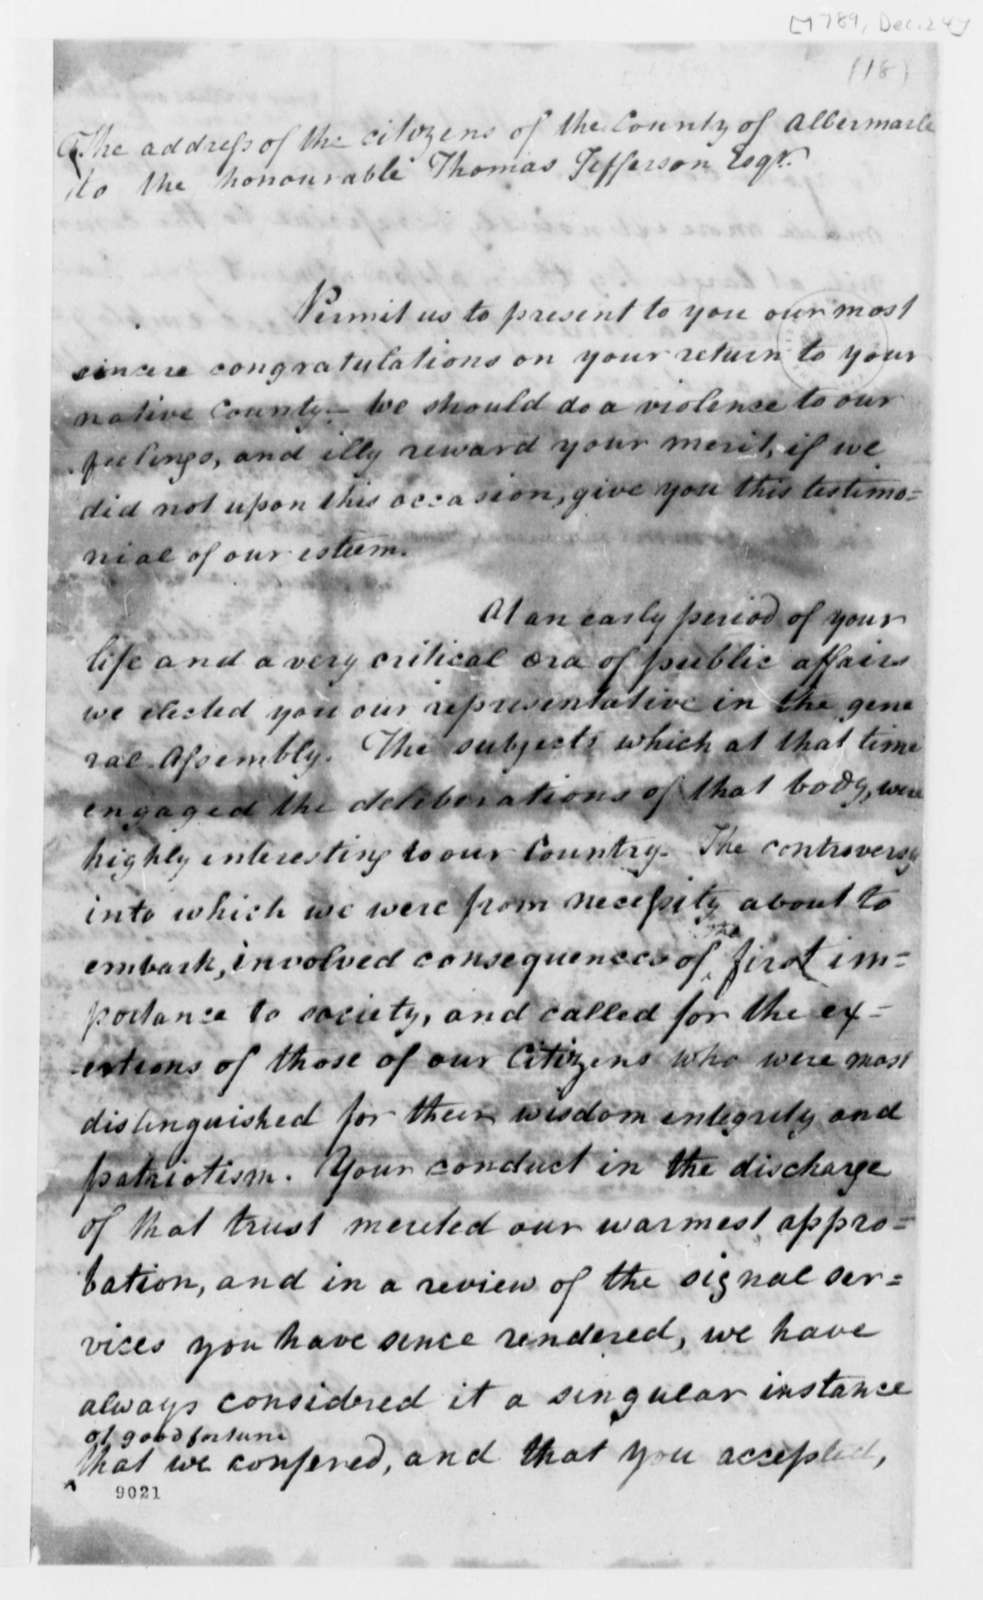 Albemarle County, Virginia, Citizens to Thomas Jefferson, December 24, 1789